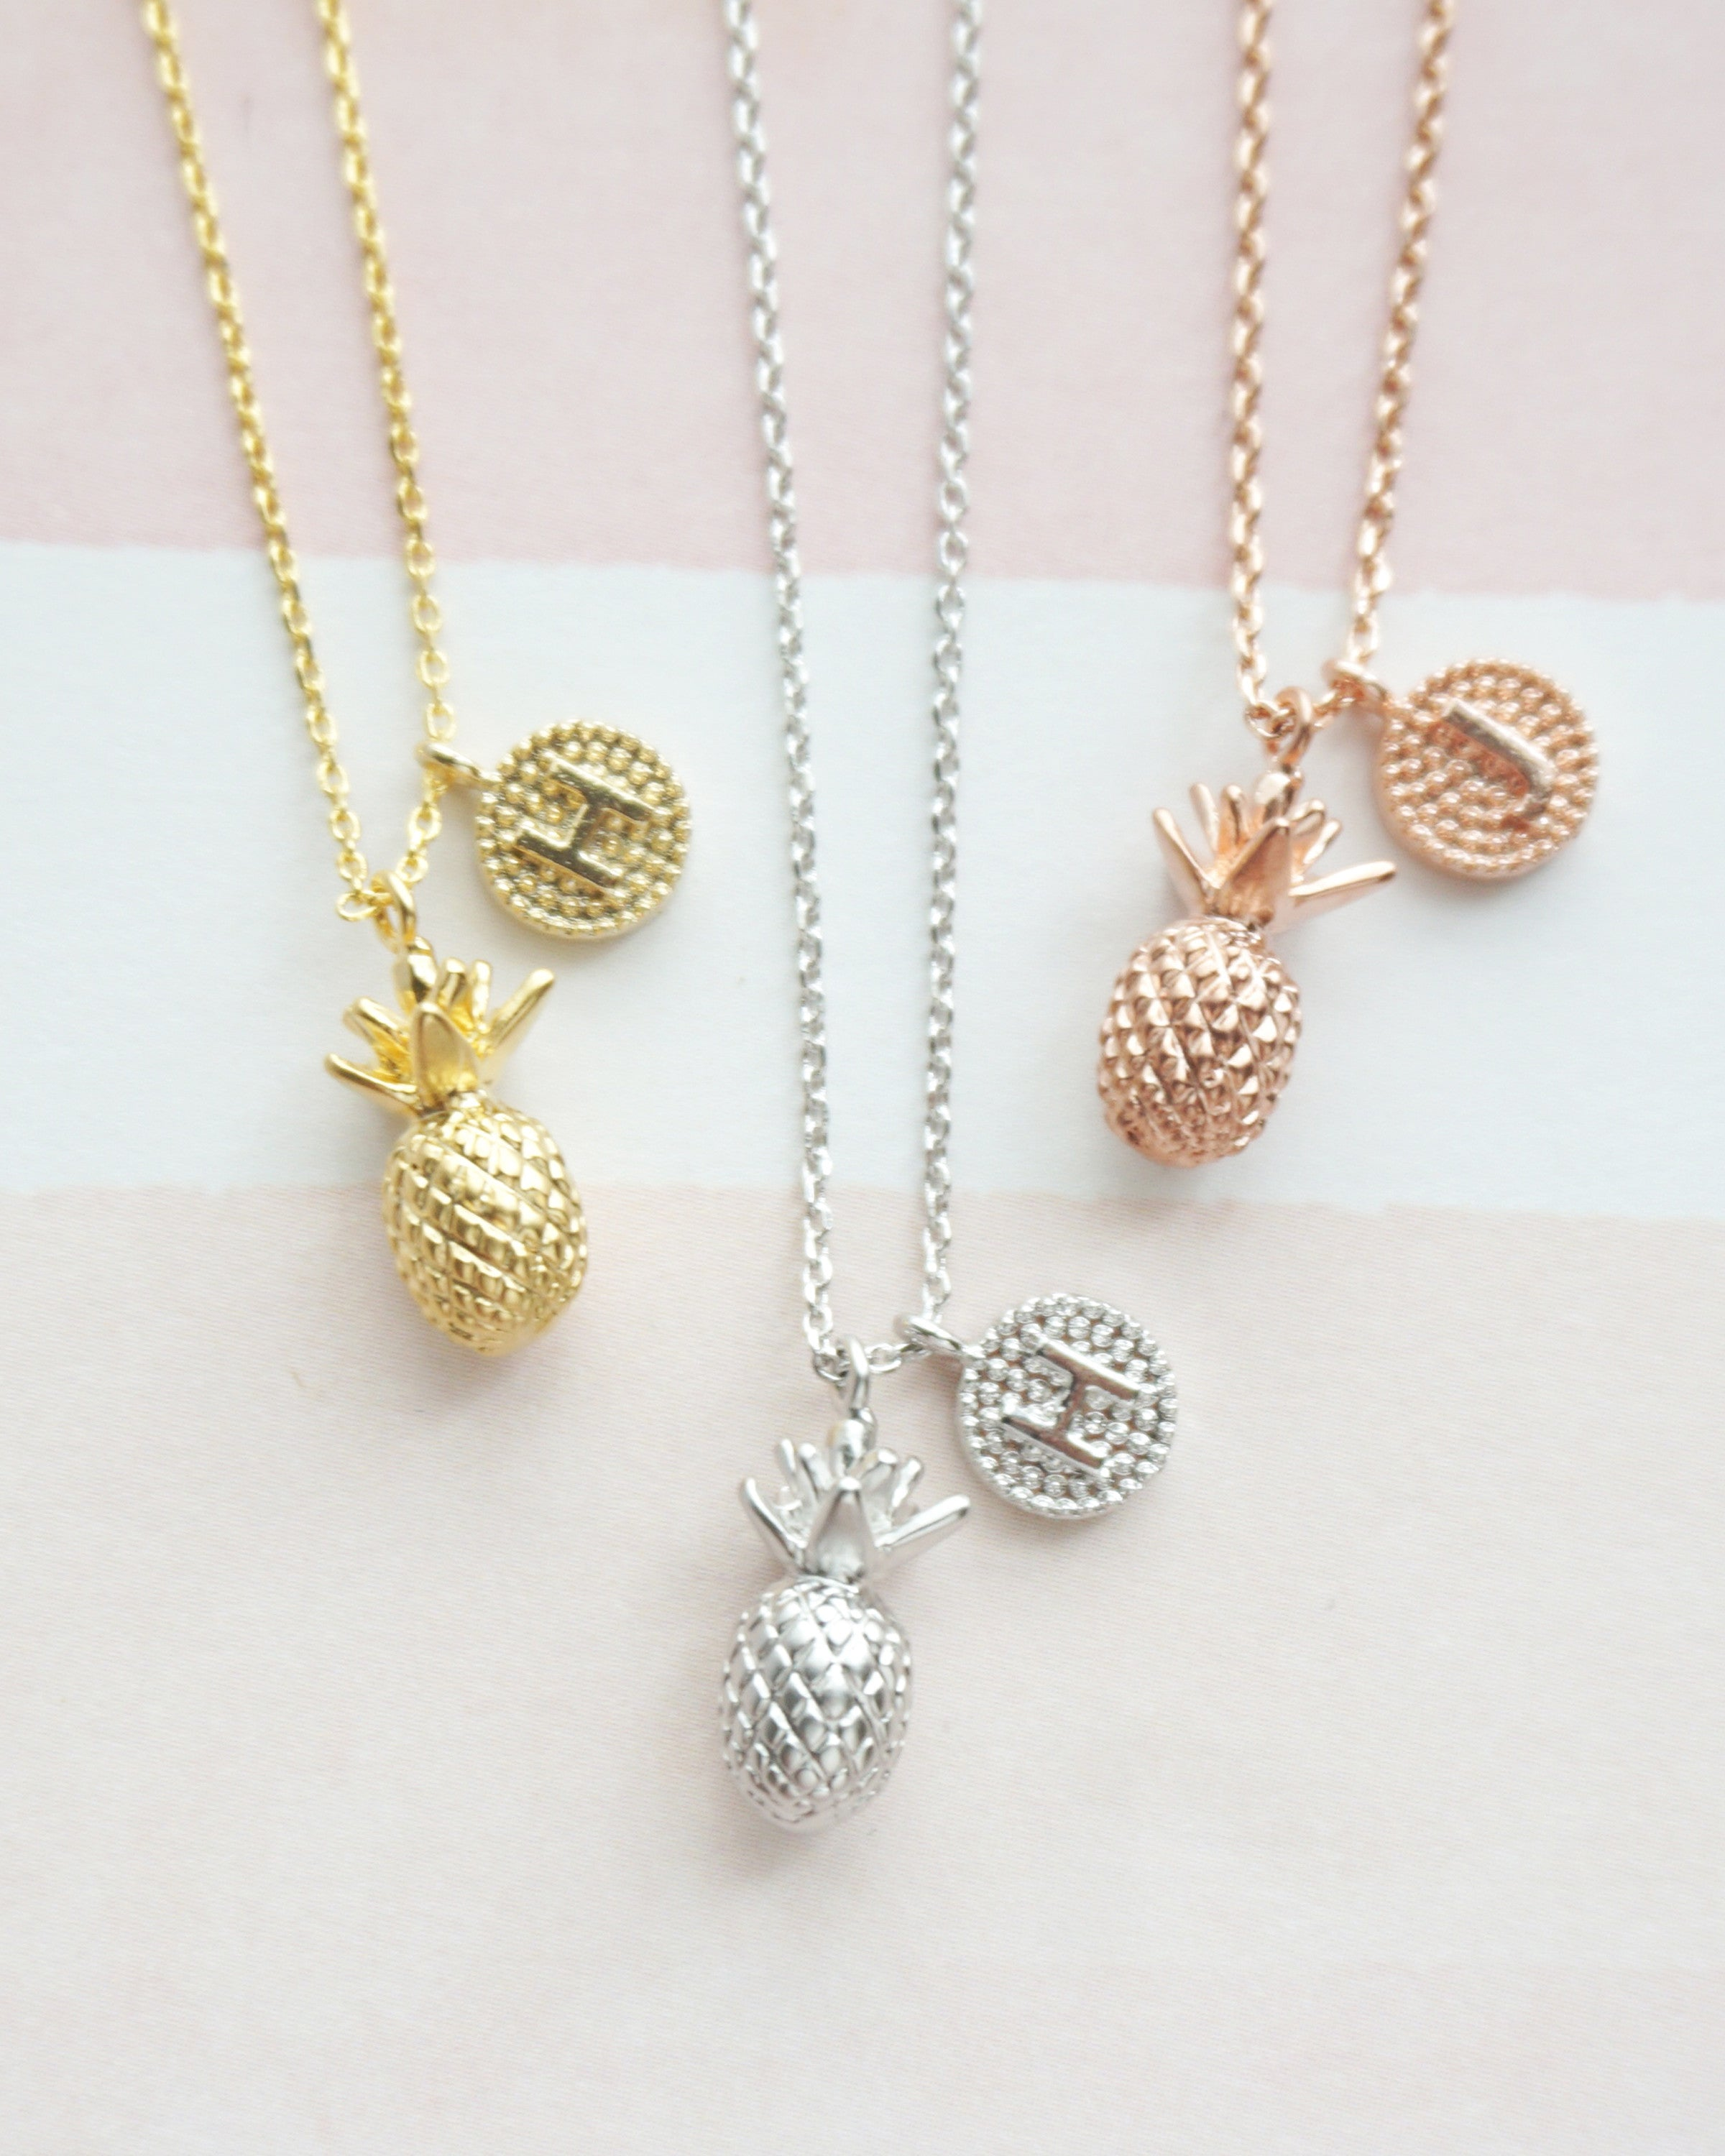 Pineapple Necklace Petite Initial Necklace Initial Necklace Pineapple Charm Gold Letter Necklace Tiny Personalized Initial Necklace